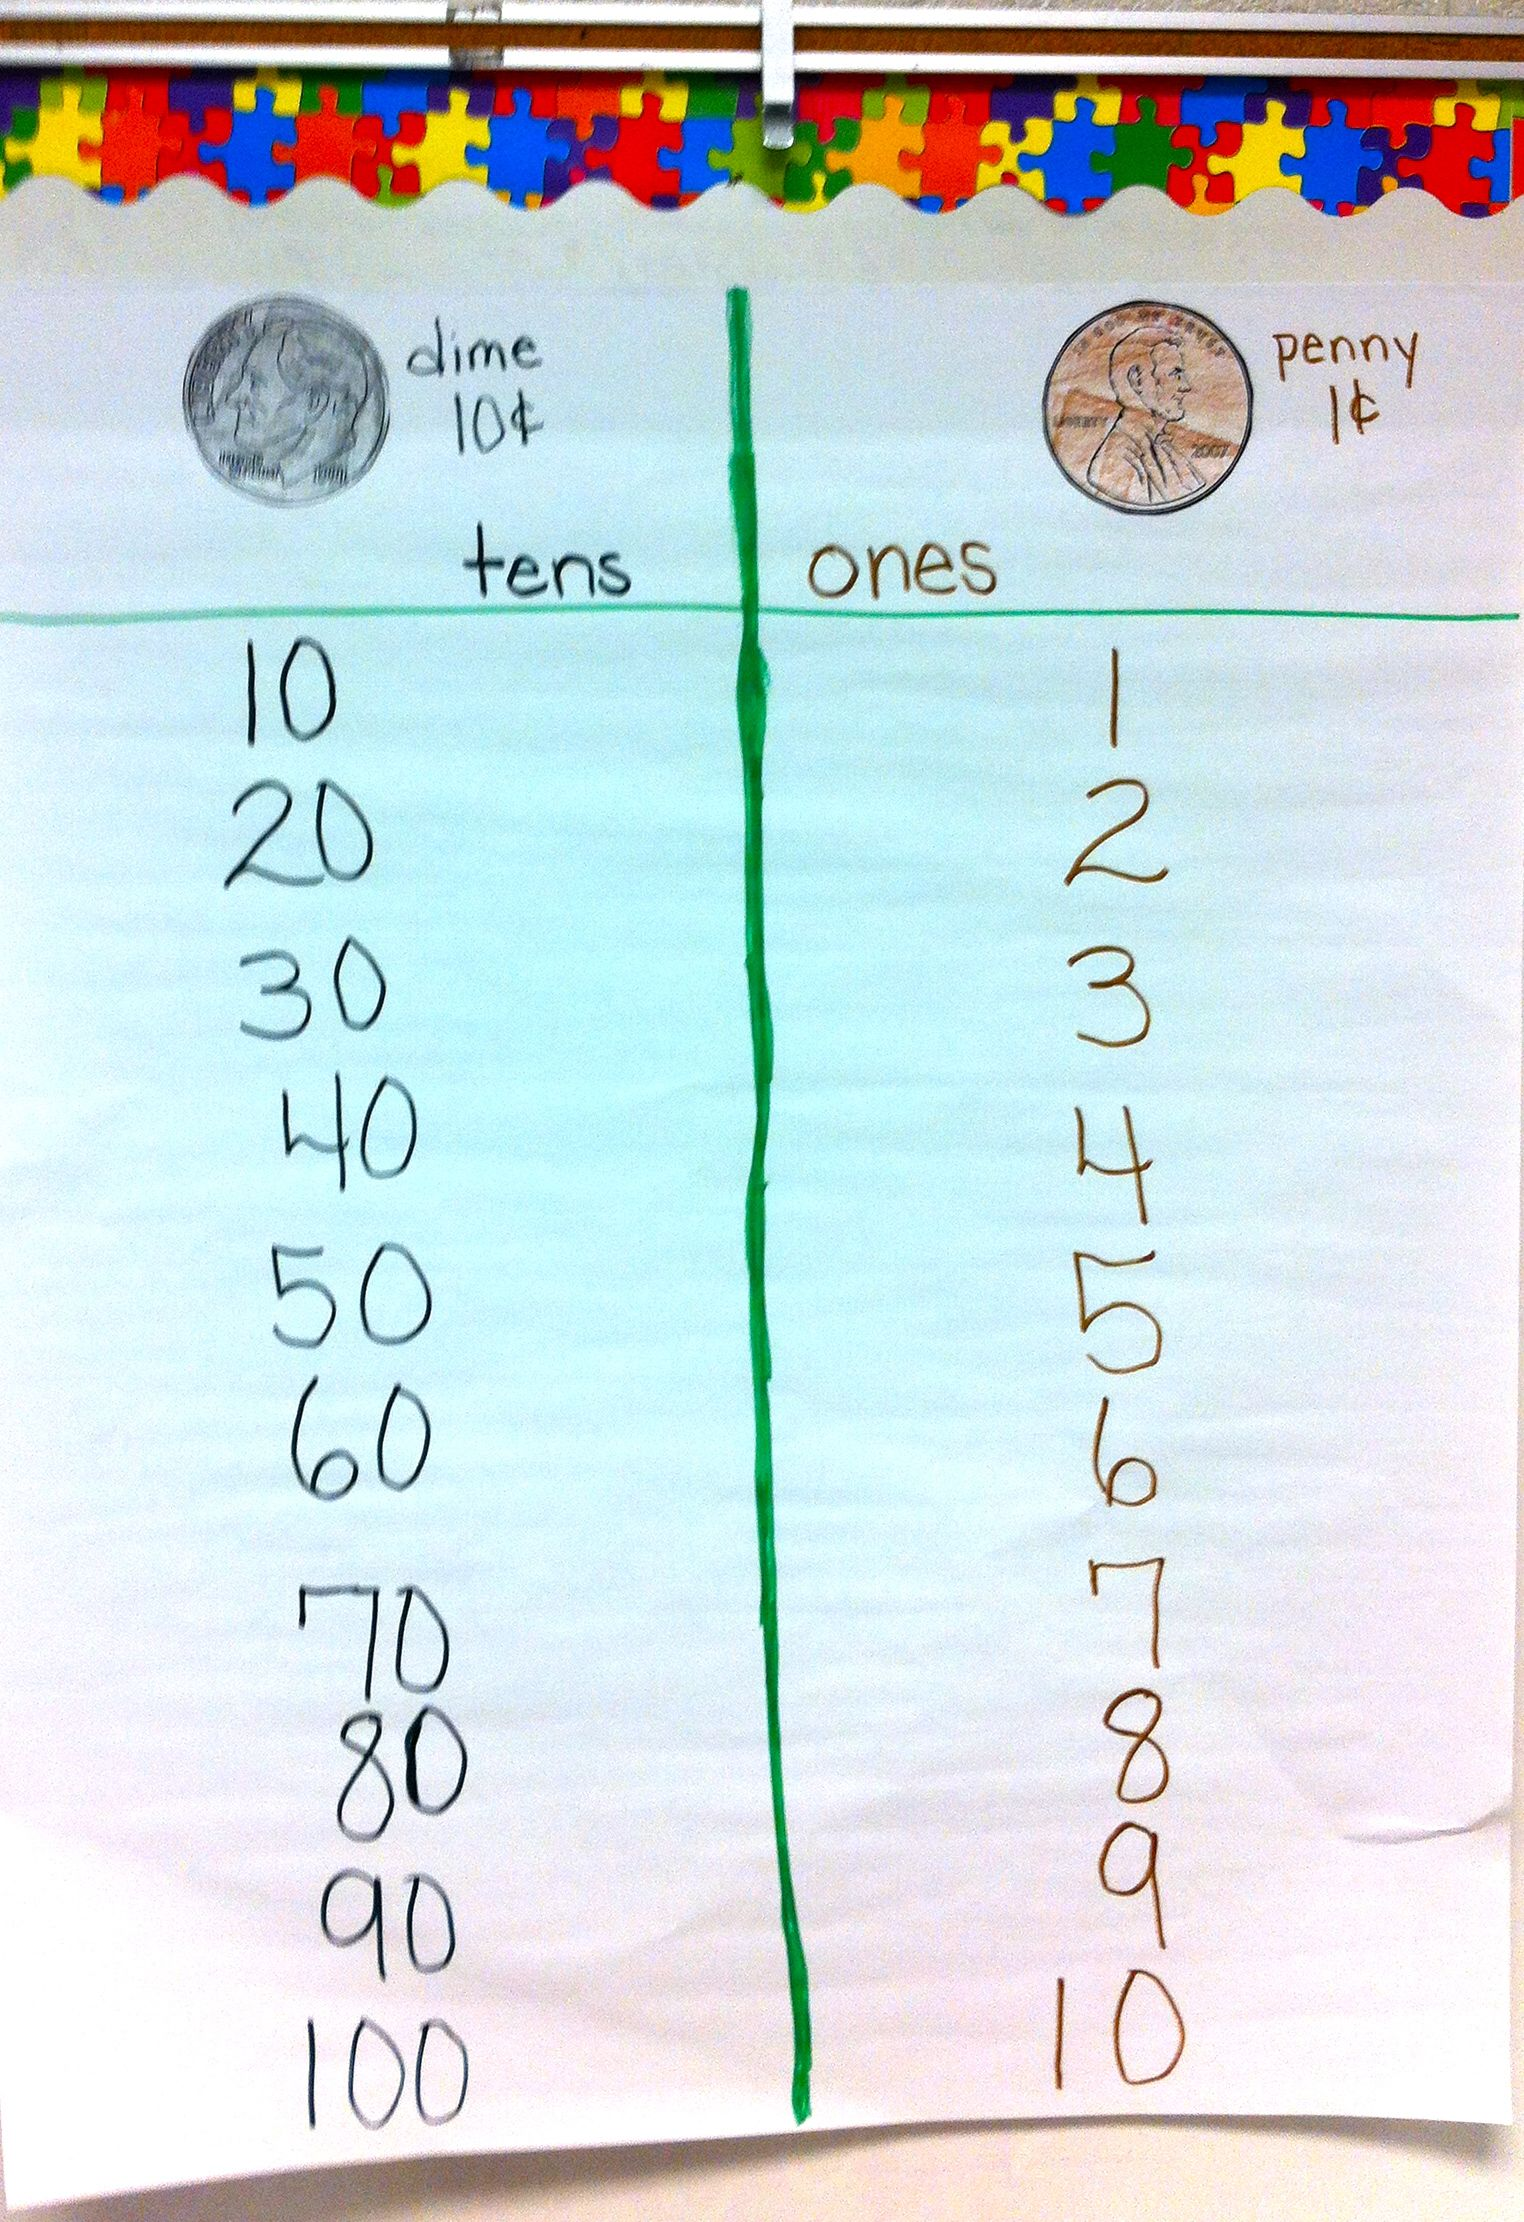 medium resolution of Pin by Marilyn Anderson on CR Anchor charts - general   Teaching math